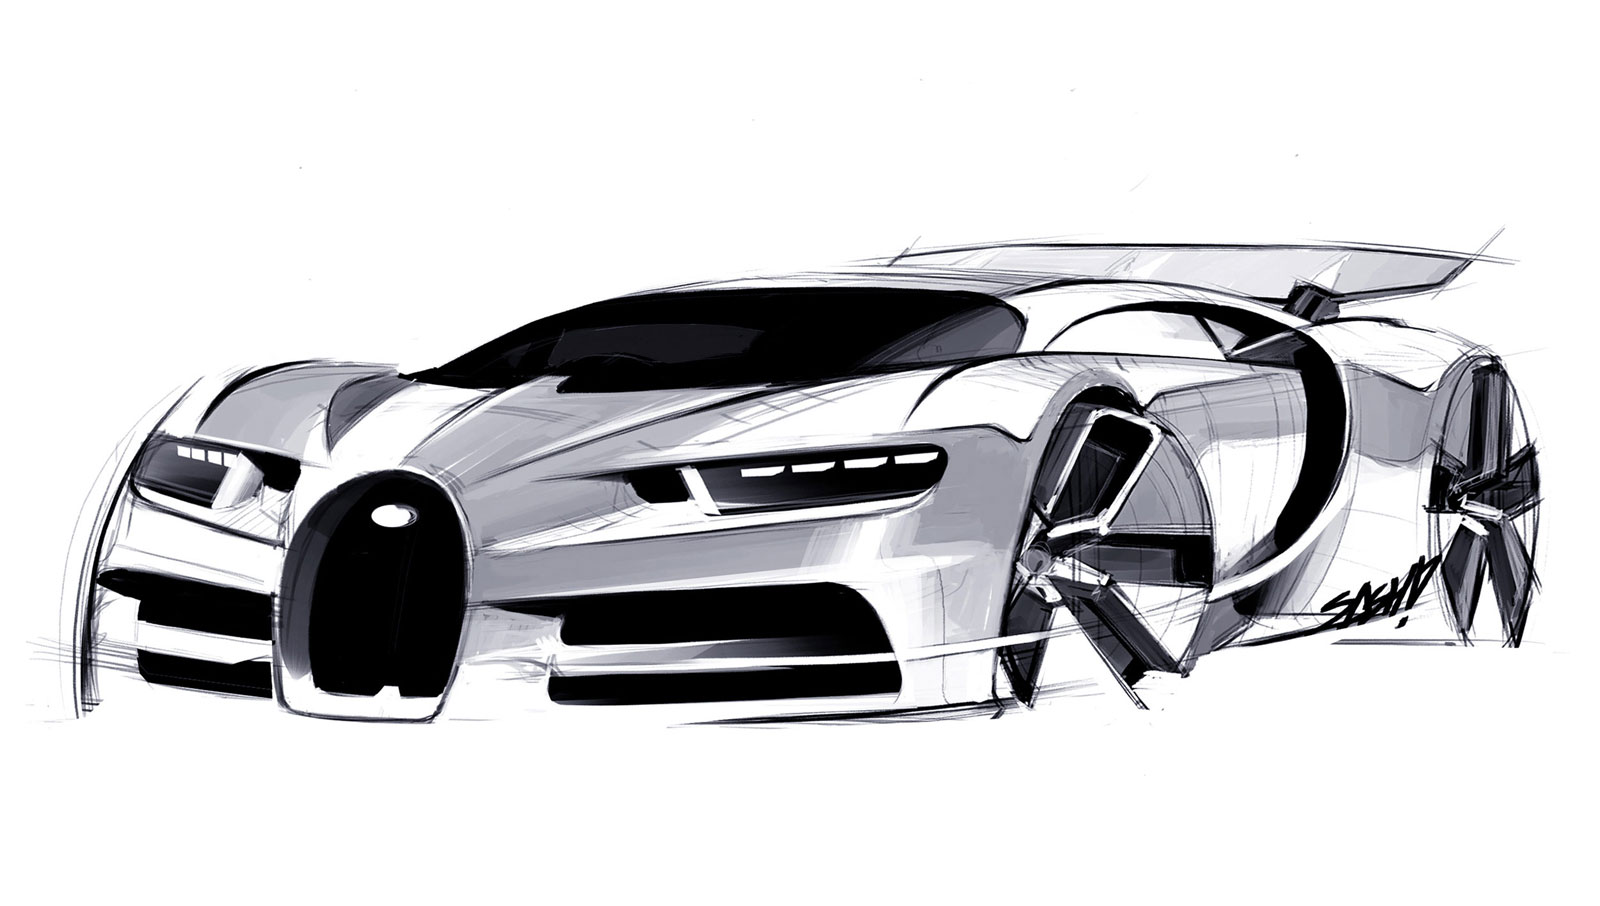 02 Bugatti Chiron Design Sketch 04jpg 1600906 Car sketch